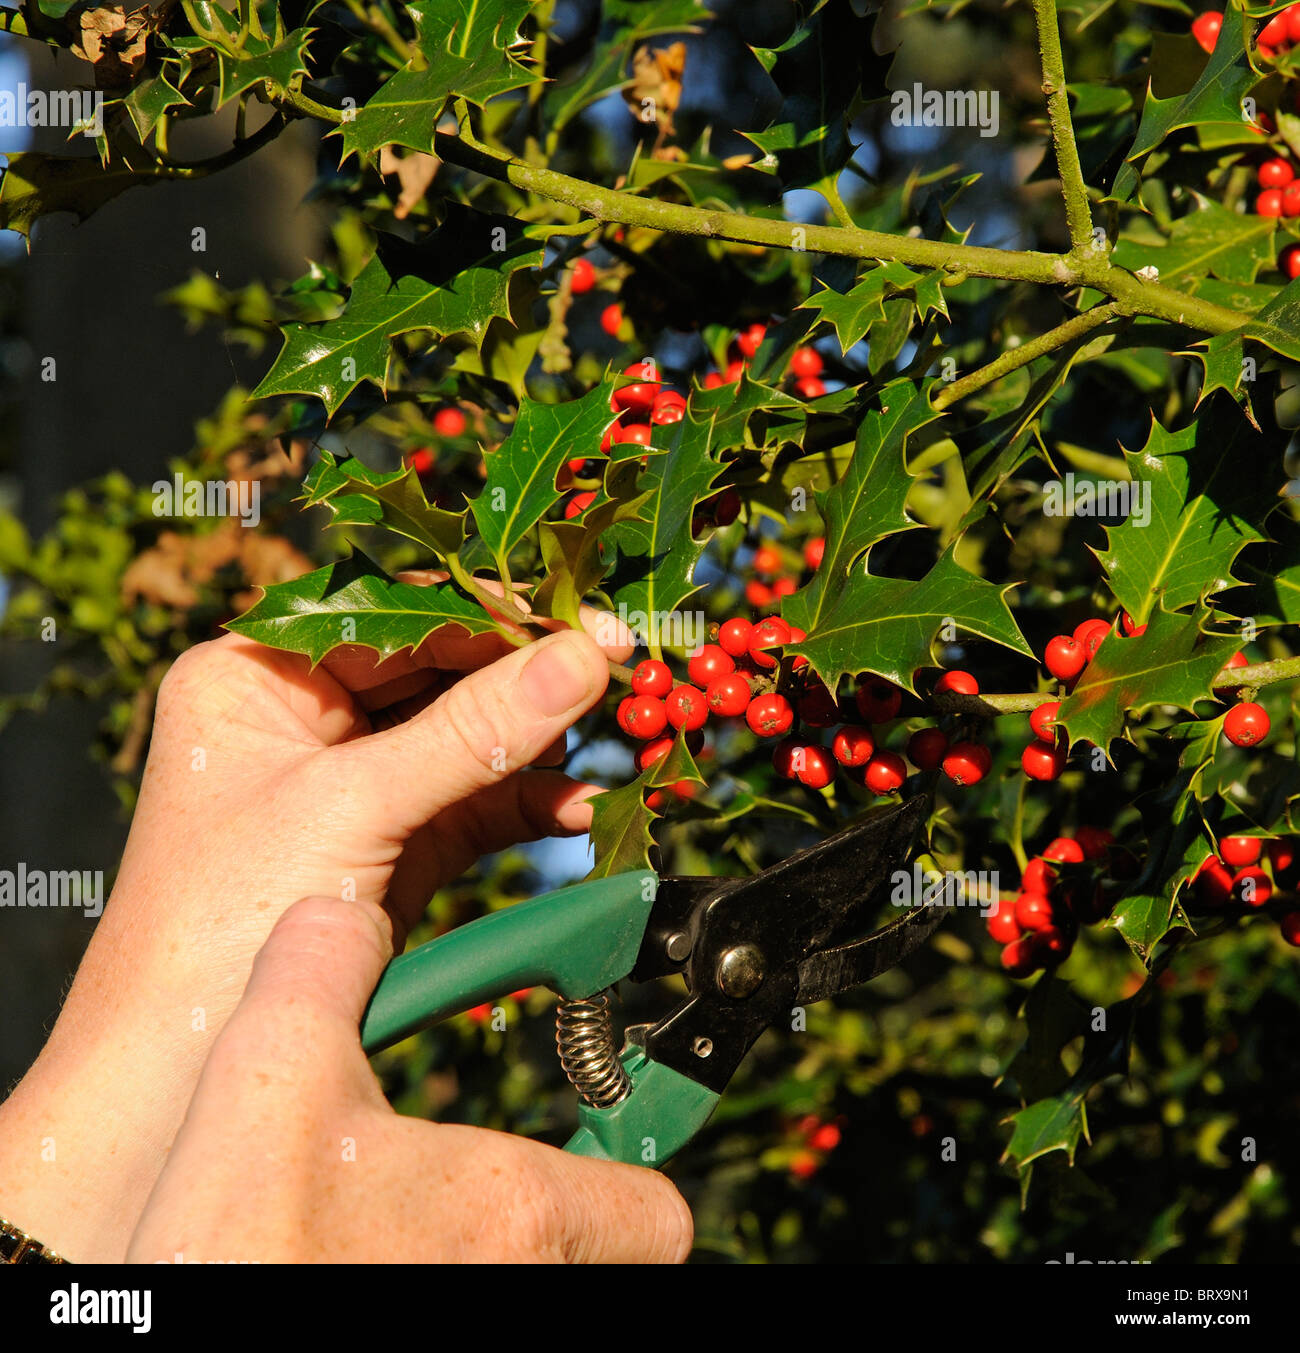 Christmas Holly Tree.Cutting Red Berries On A Holly Tree Branch For Christmas